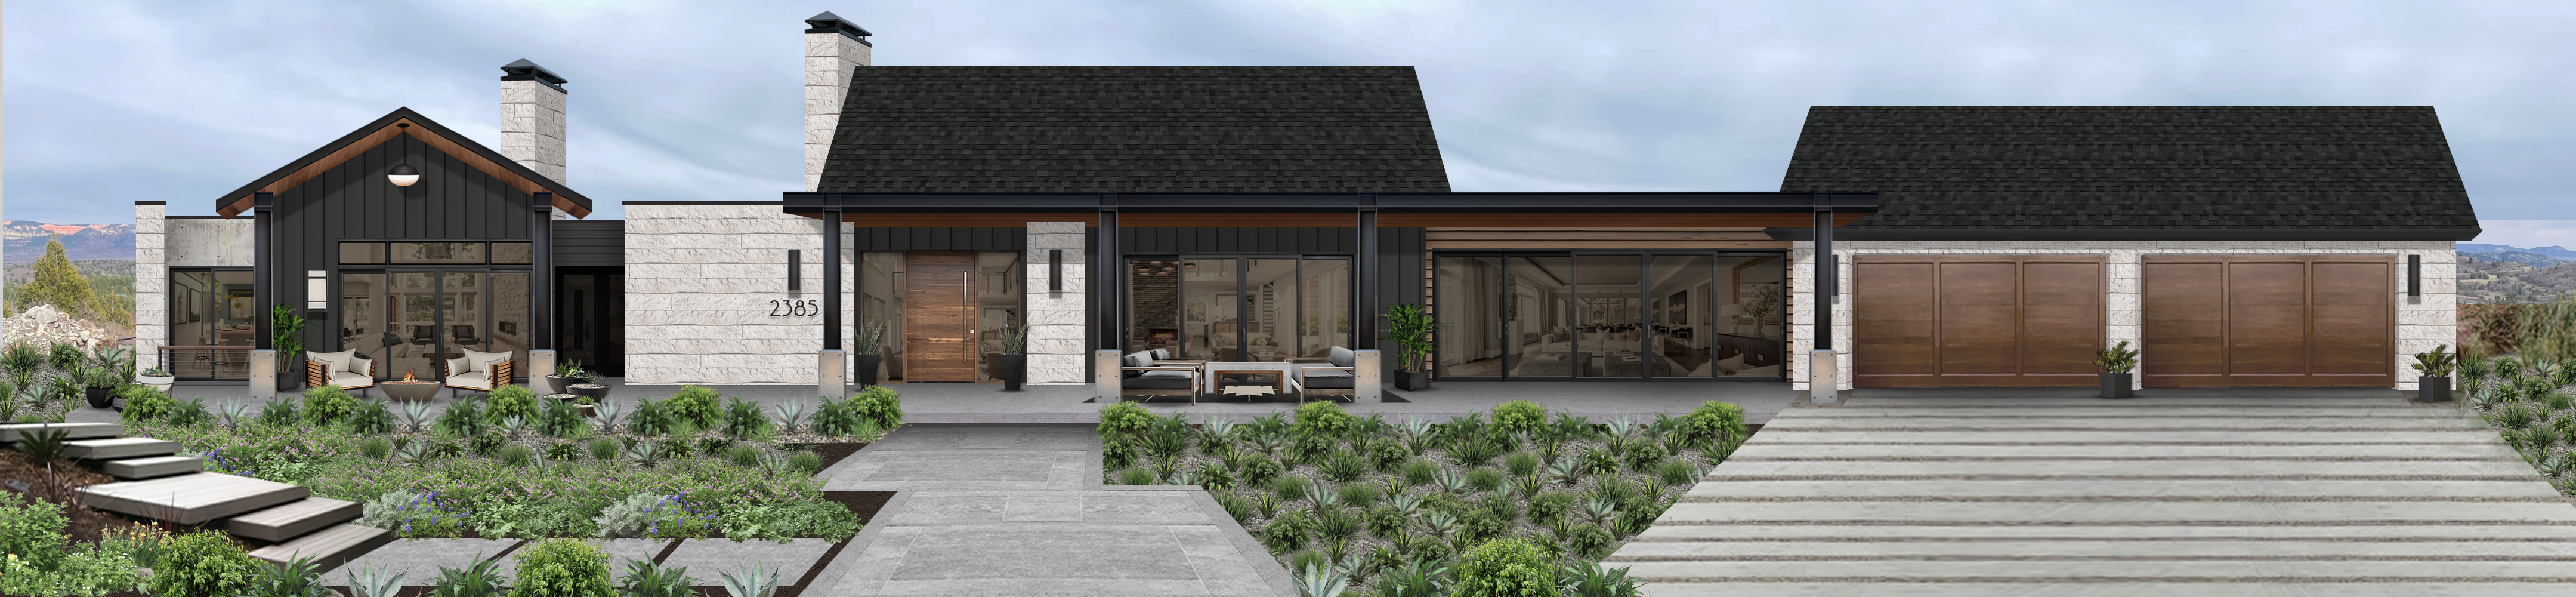 Virtual rendering of a contemporary home that makes use of James Hardie siding in Mountain Ash